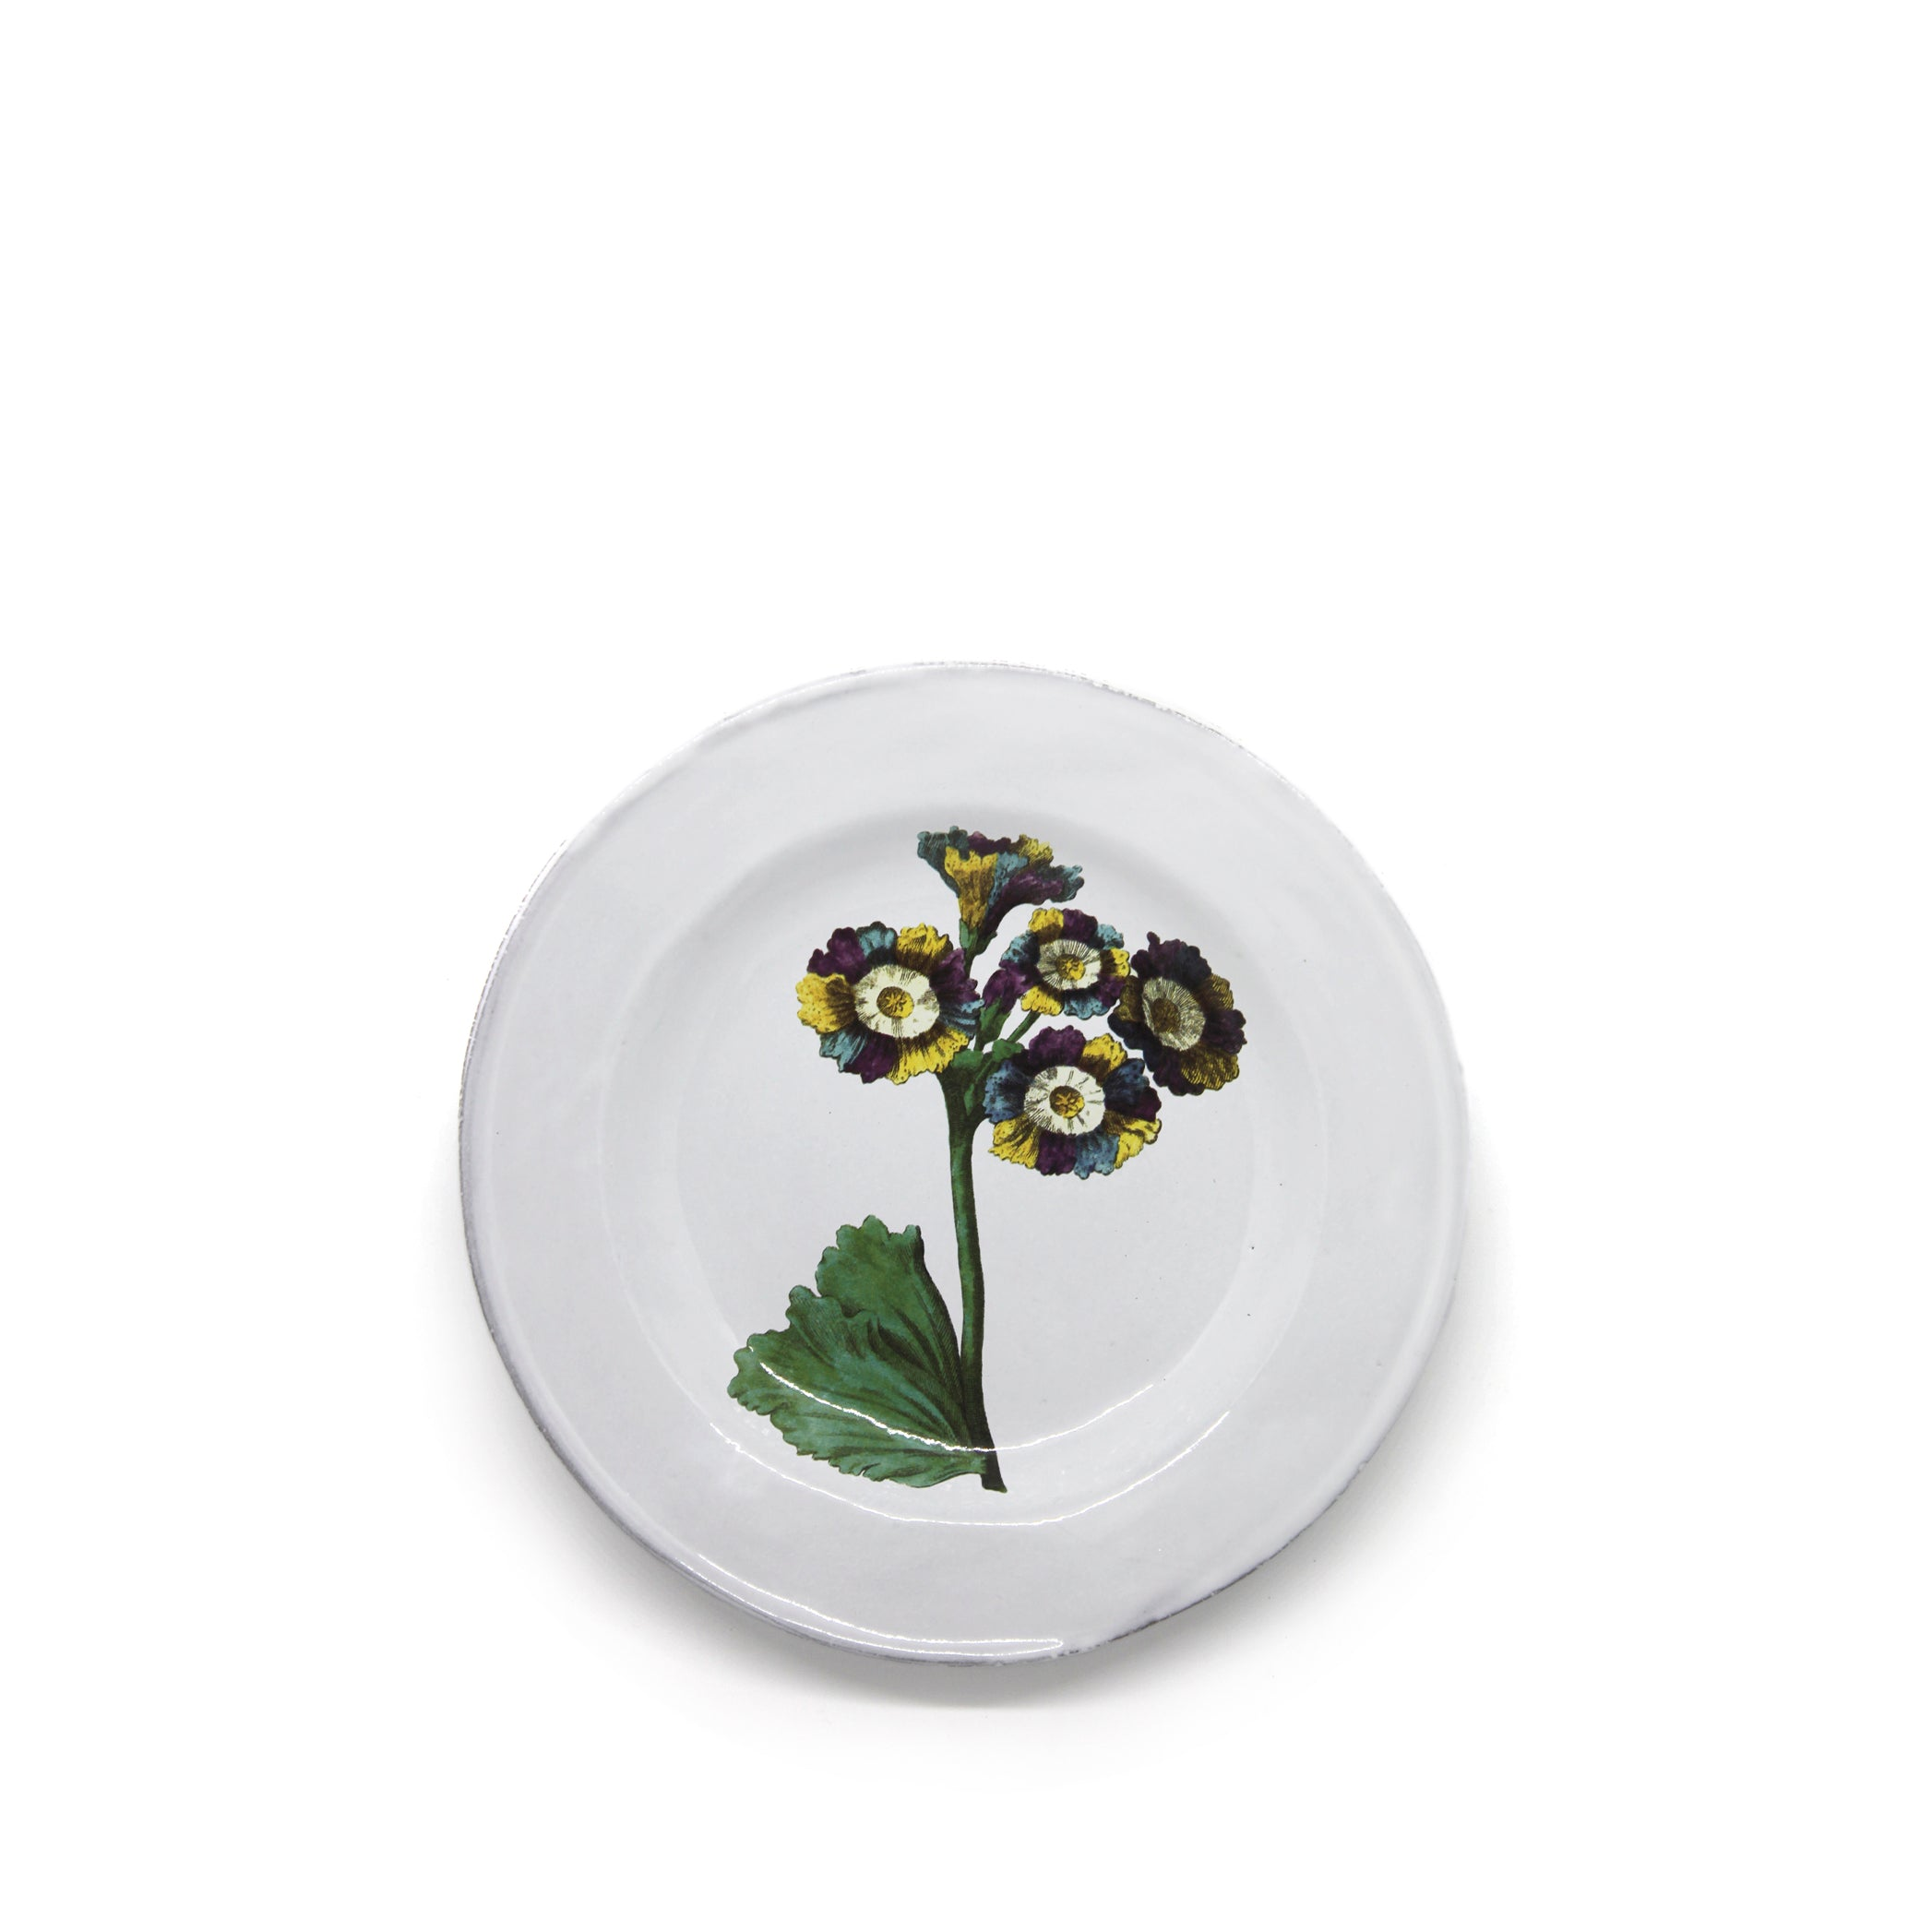 Lord Willoughby's Auricula Flower Plate by Astier de Villatte